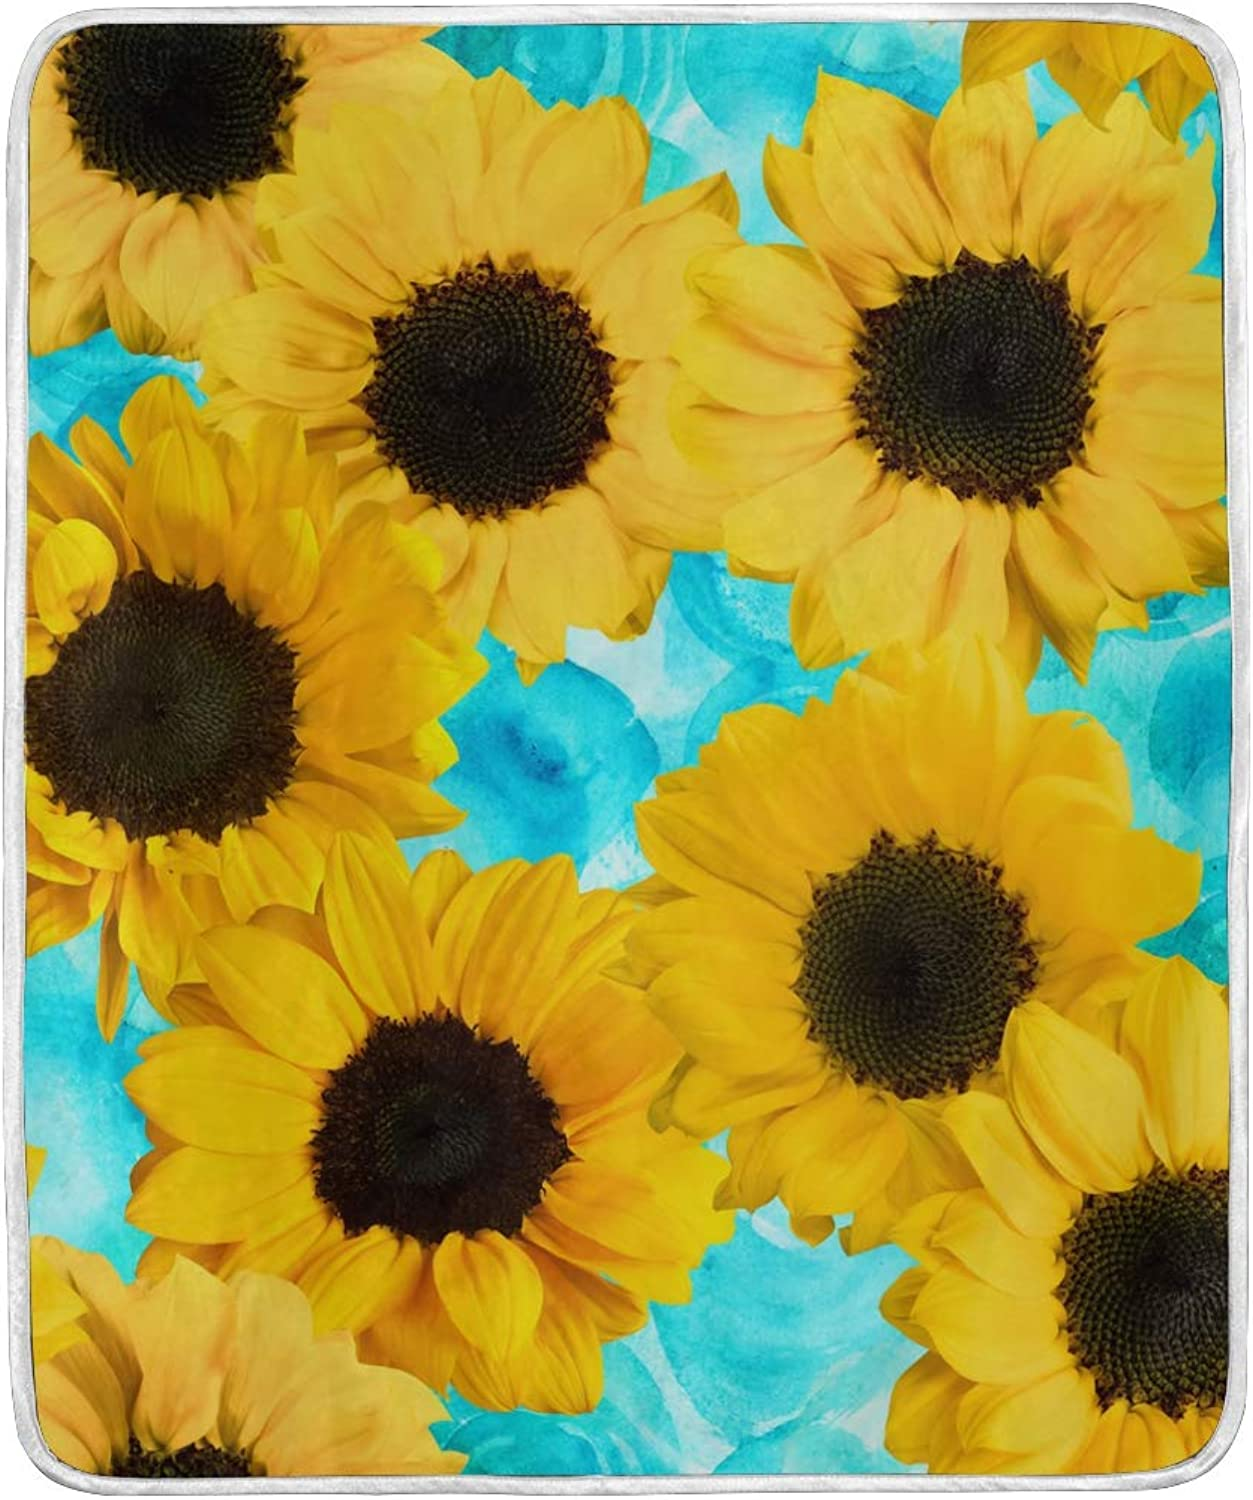 Senya Luxury Blanket Home Decor Retro Sunflowers Throw Blanket Lightweight Microfiber Super Soft Warm Cozy Plush Bed Blanket 60 x 50 Inches